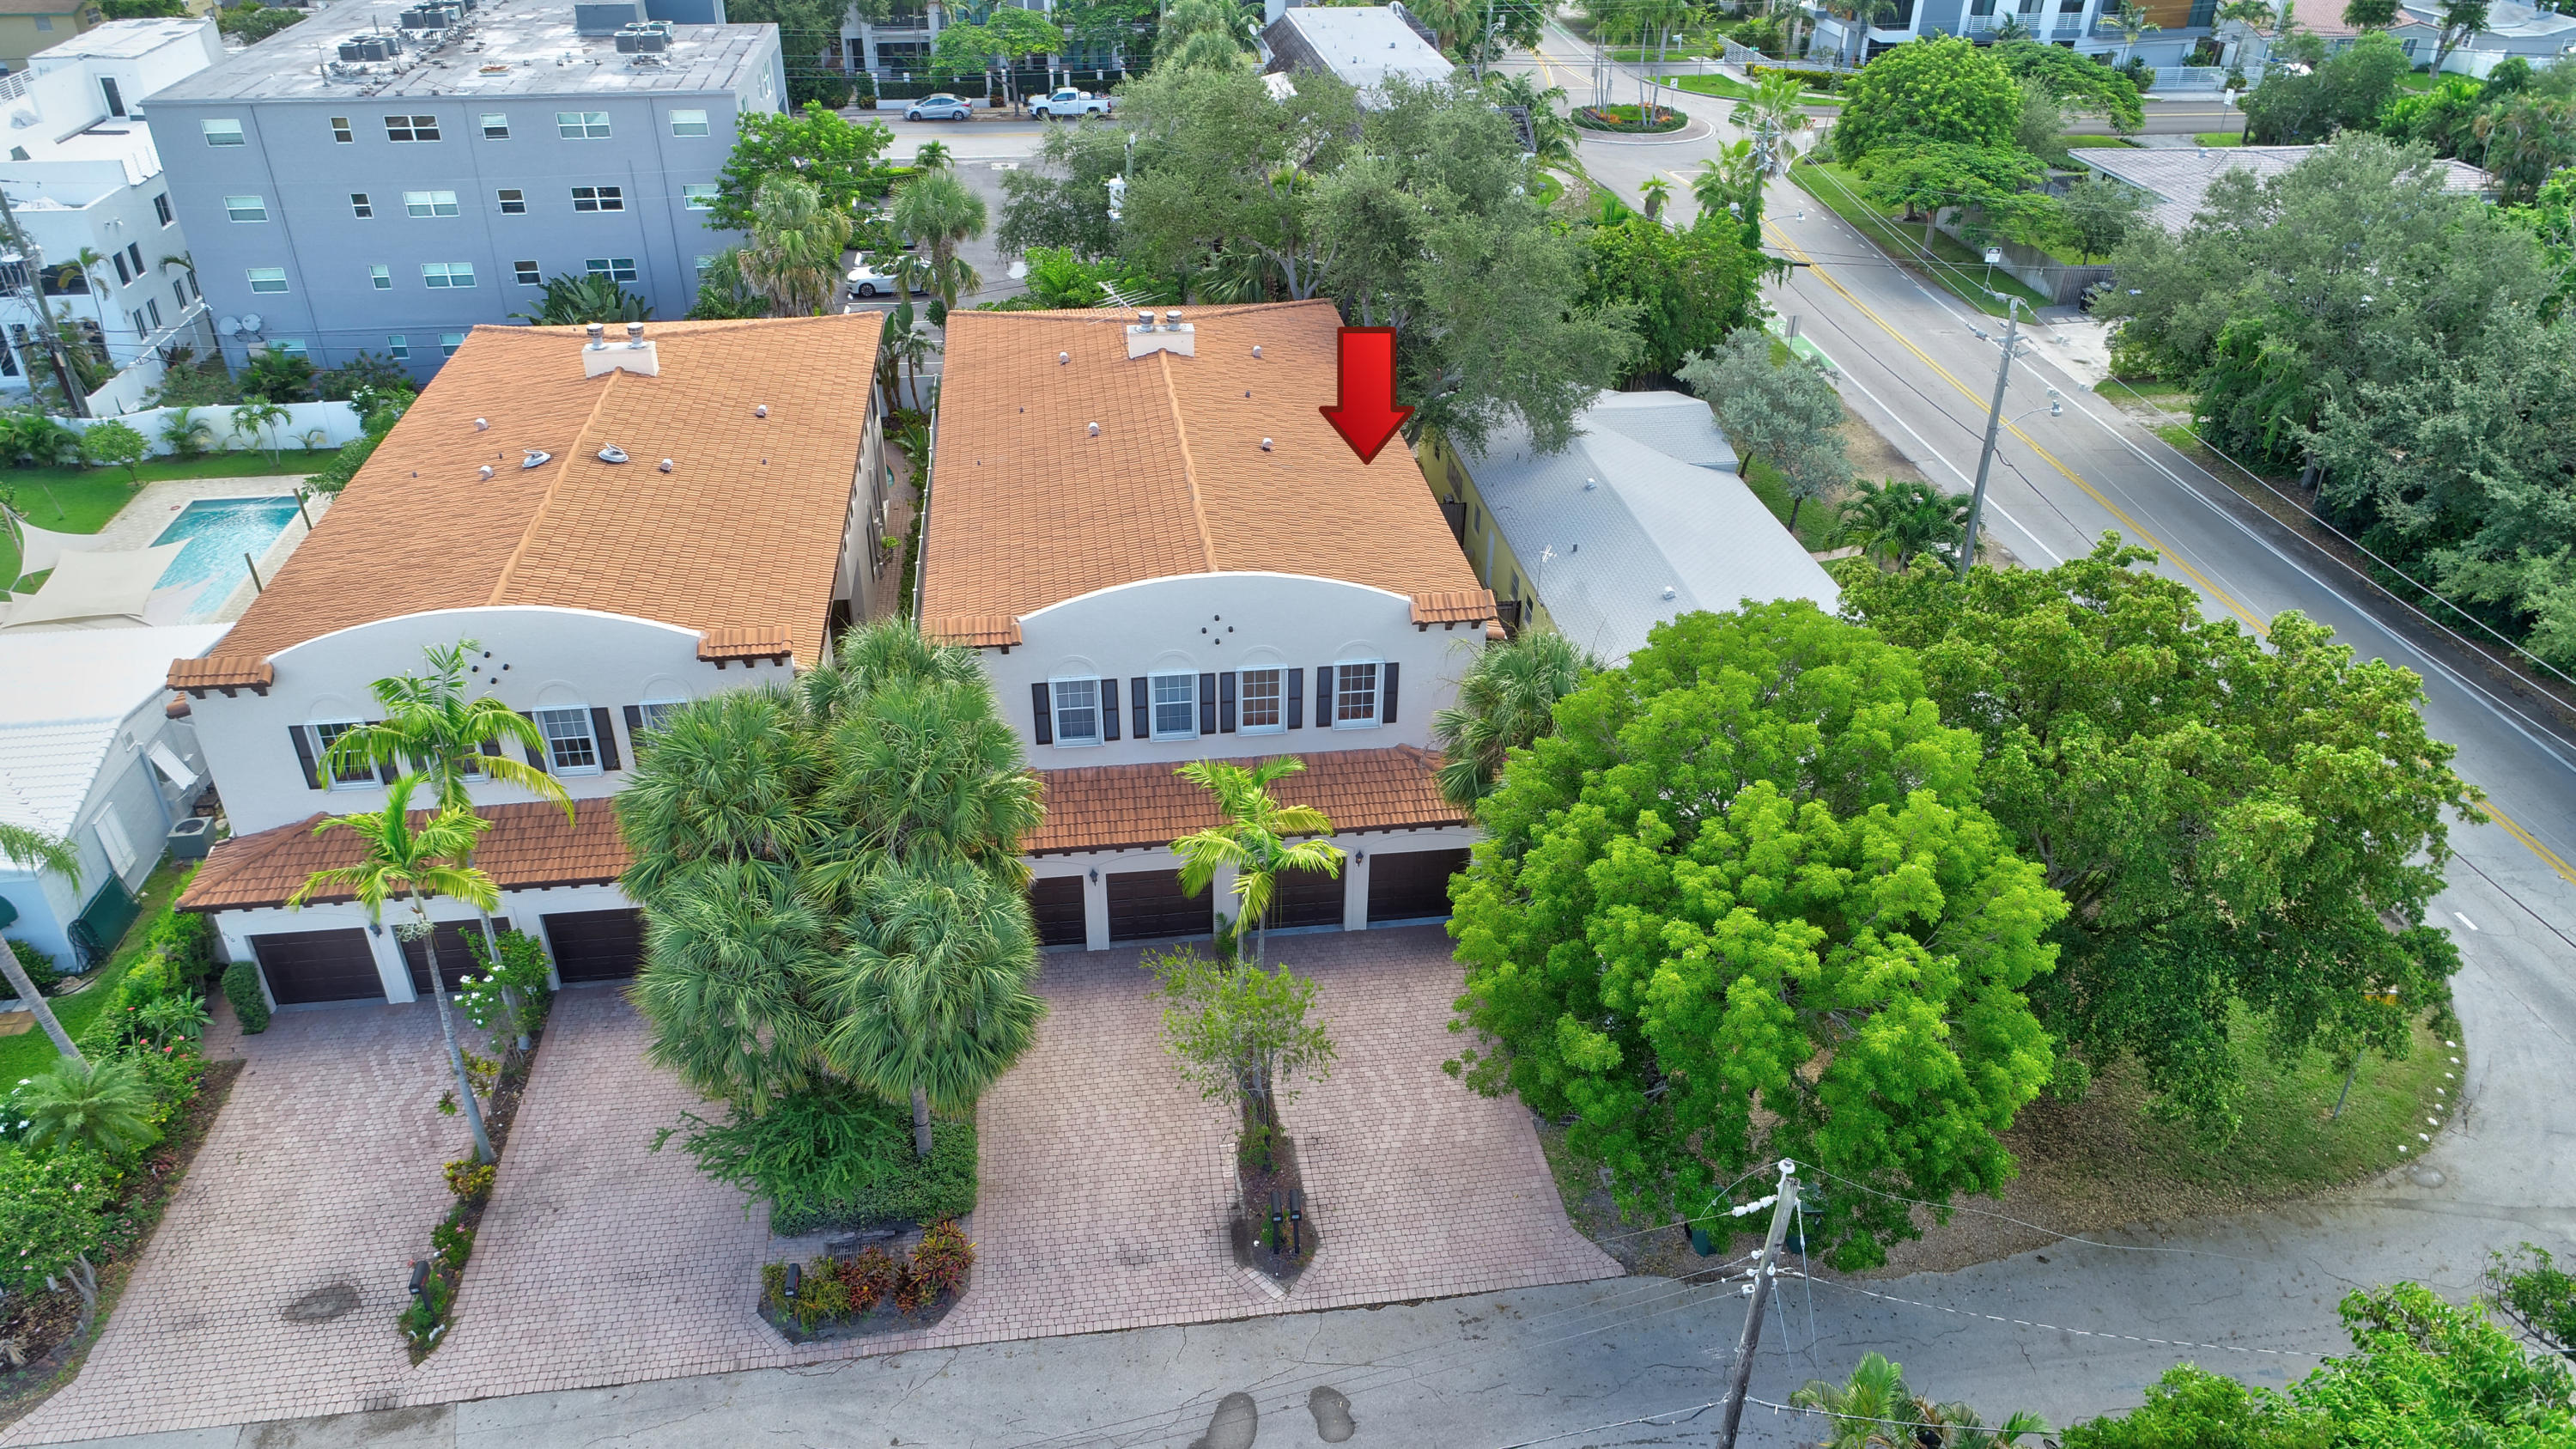 604 NE 13th Avenue, 604 - Fort Lauderdale, Florida